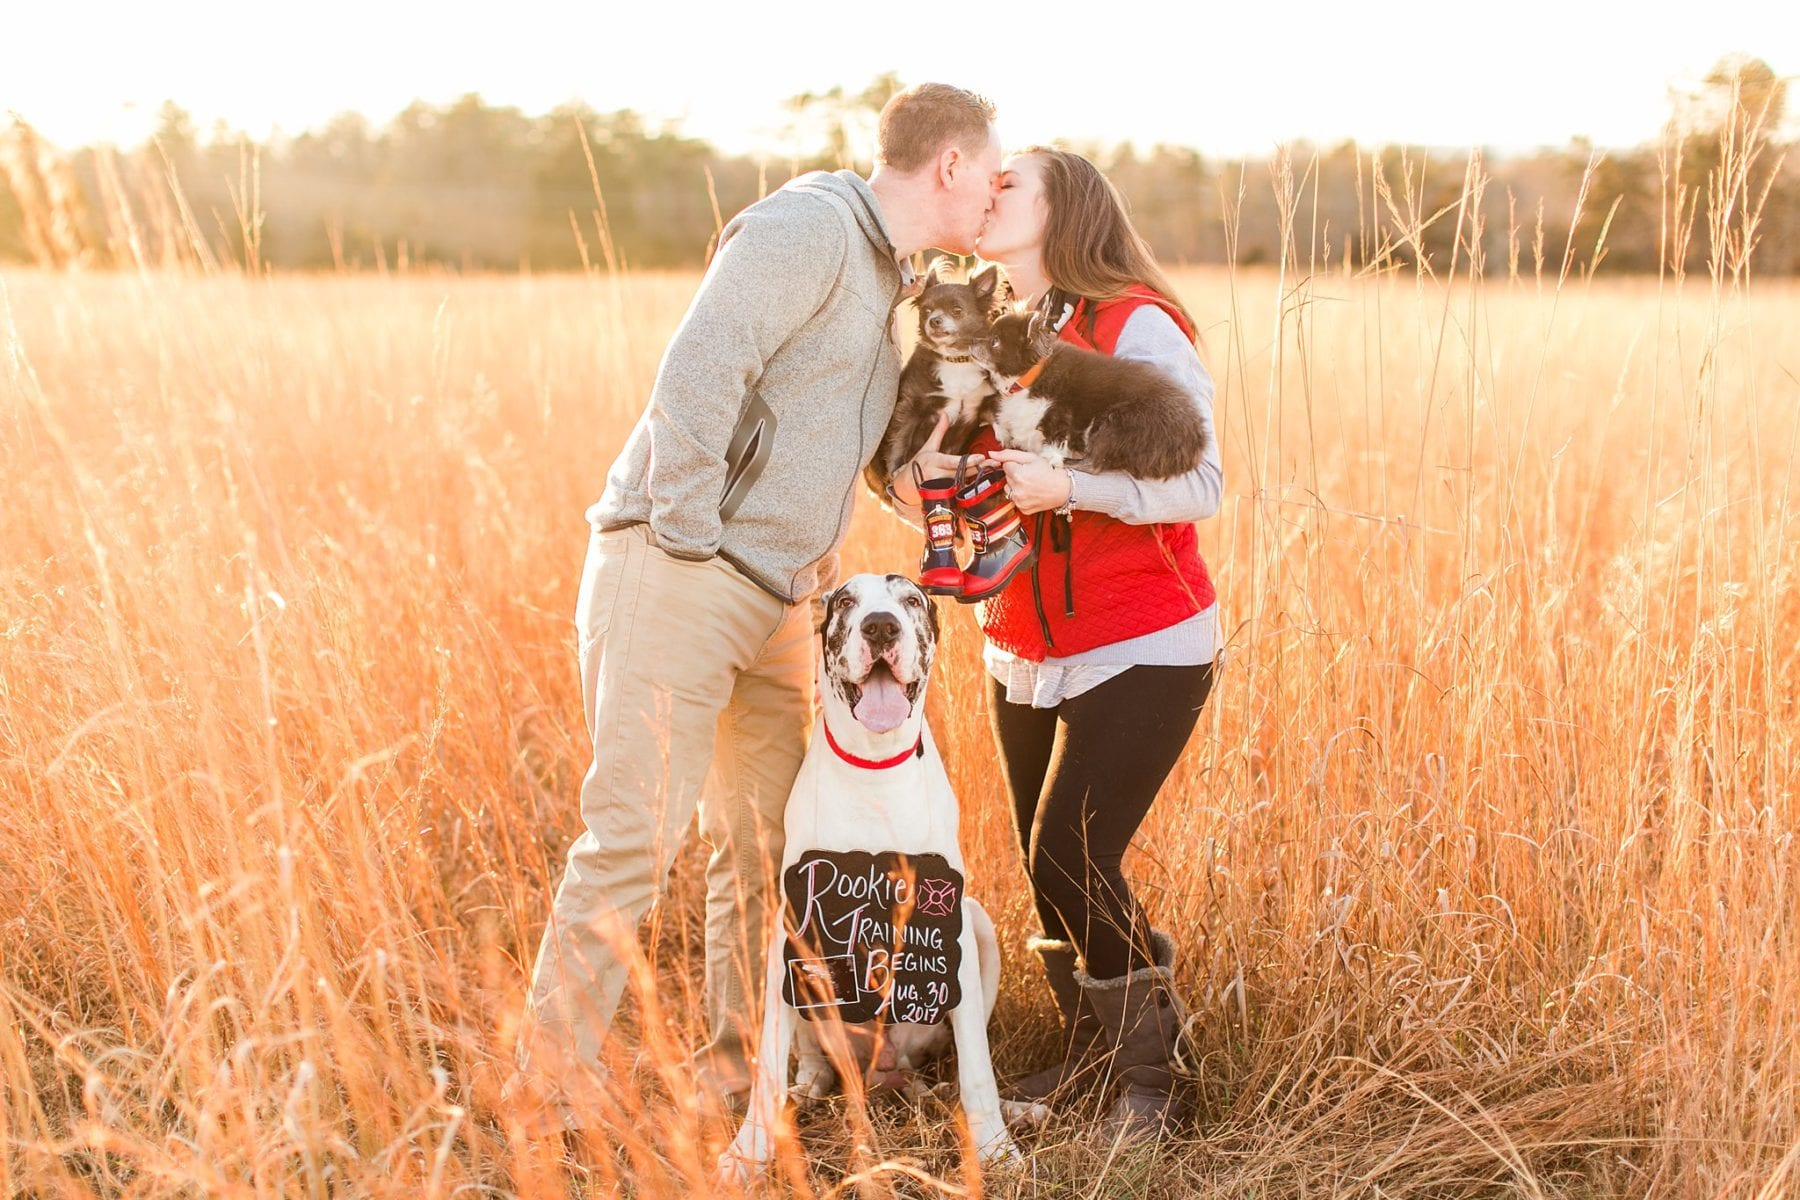 Firefighter Baby Announcement Virginia Photographer Megan Kelsey Photography Jeromy & Becky-127.jpg